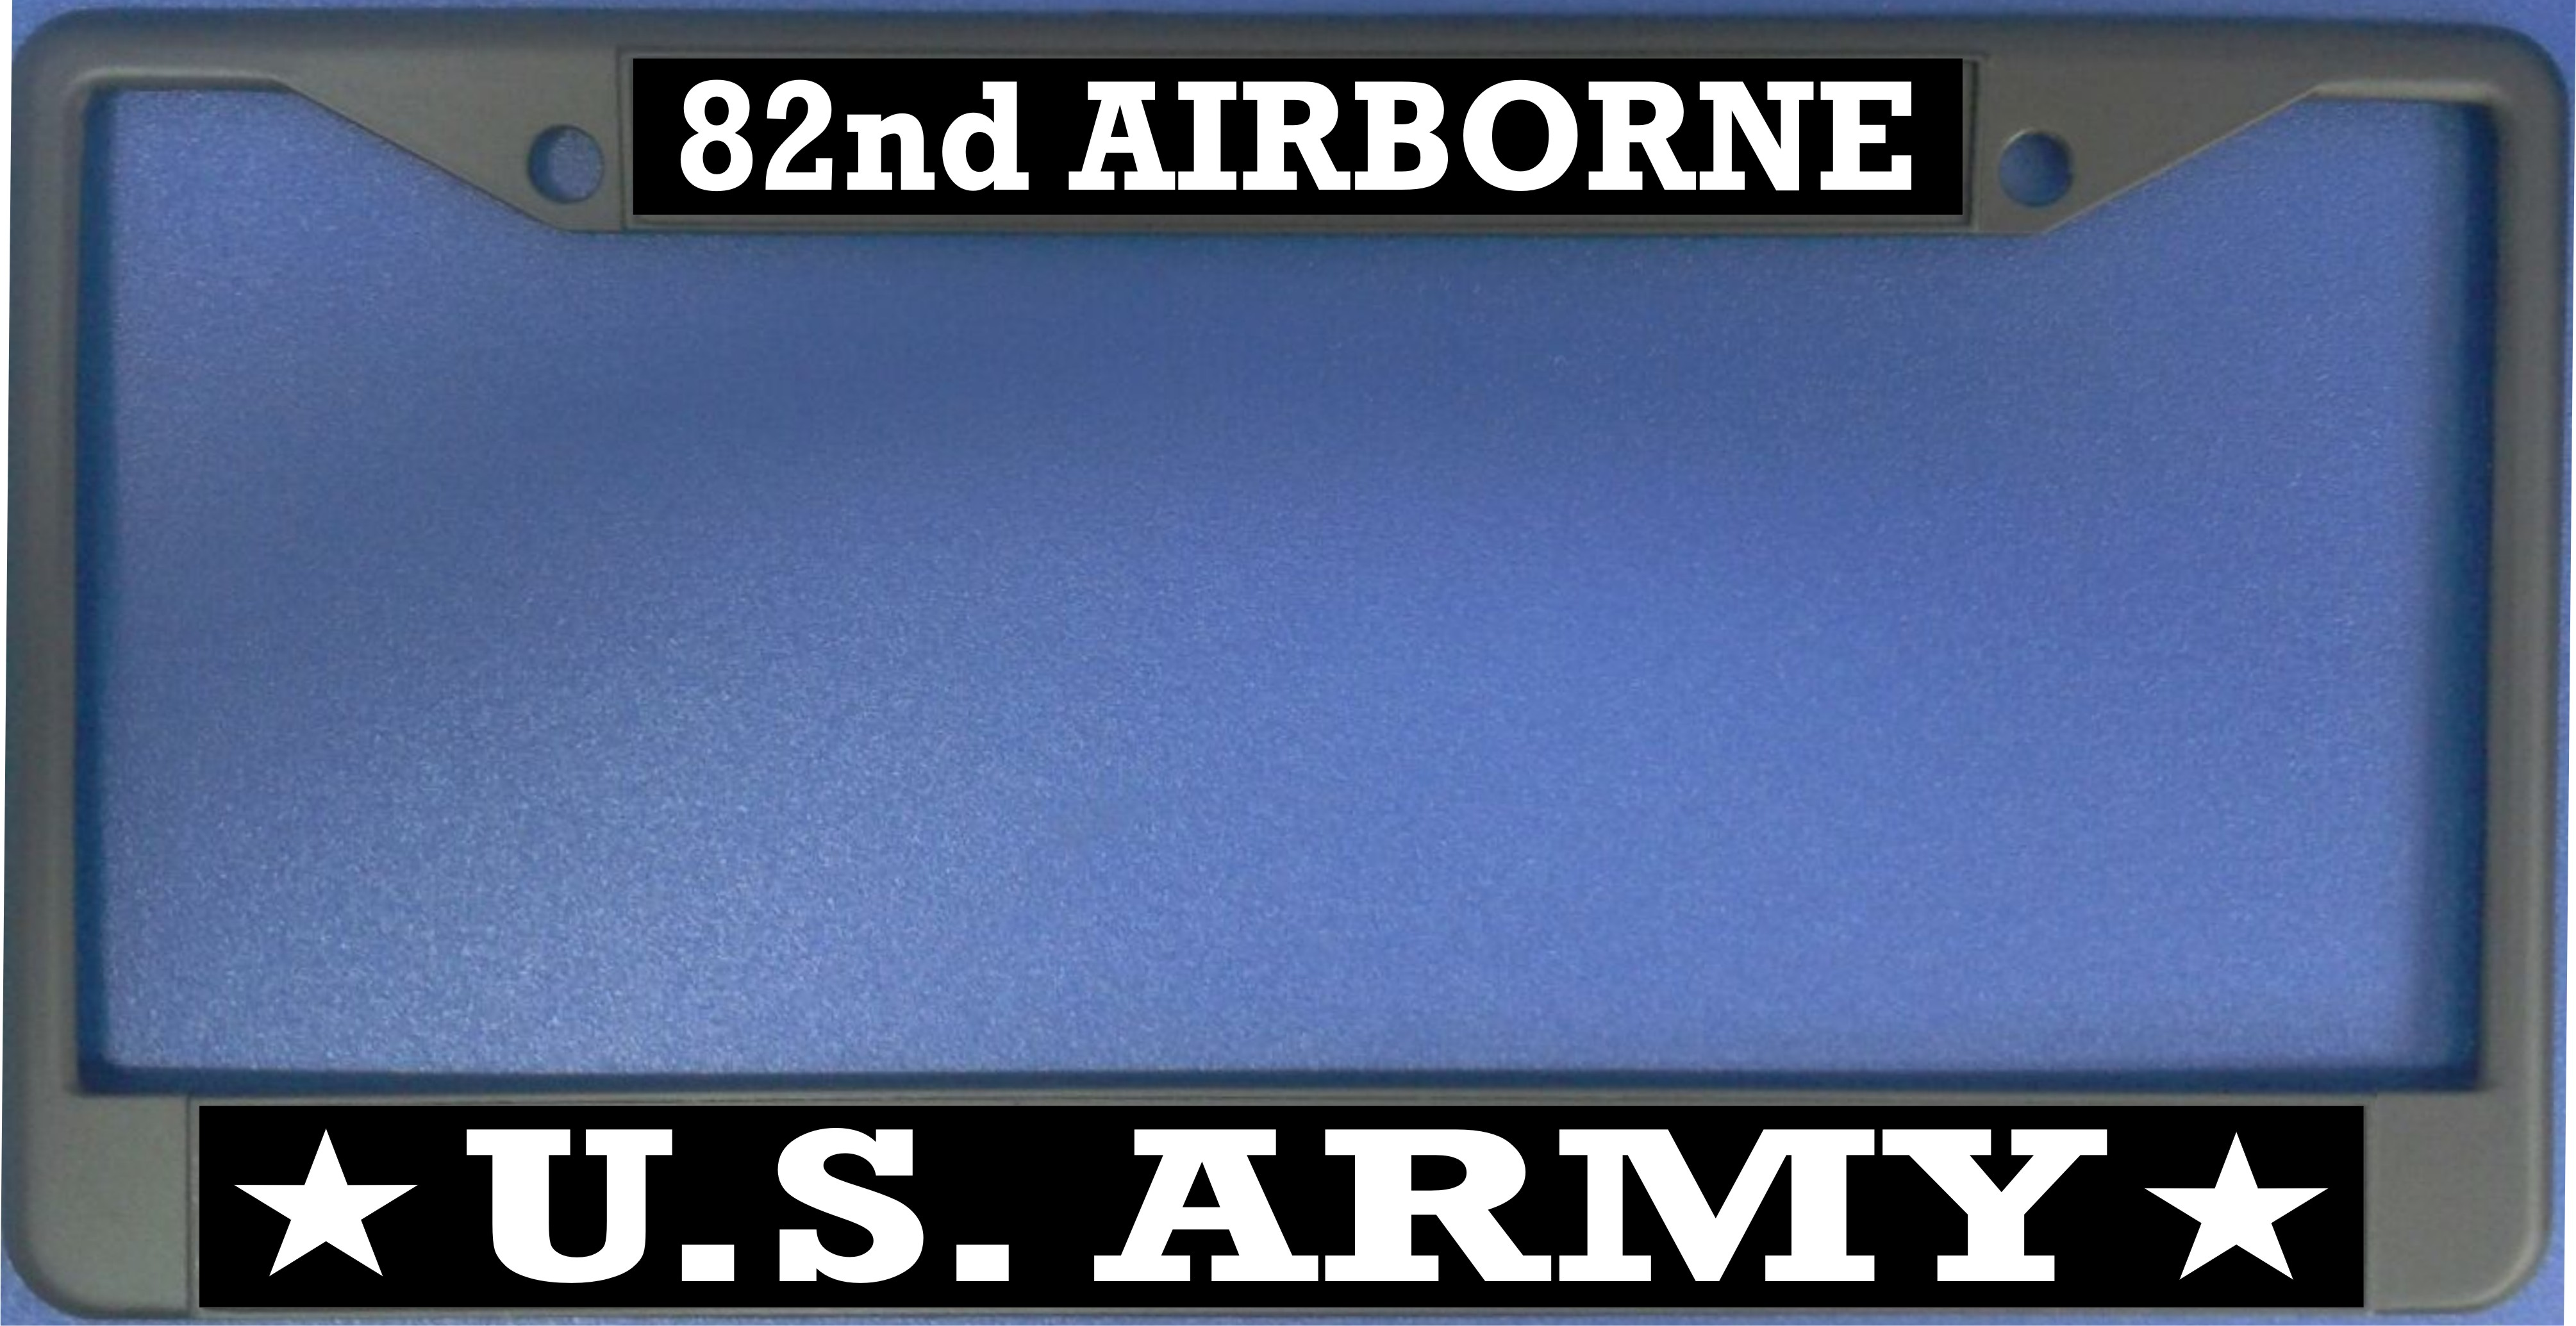 U.S. ARMY 82nd Airborne Photo License Plate Frame  Free Screw CAPs with this Frame